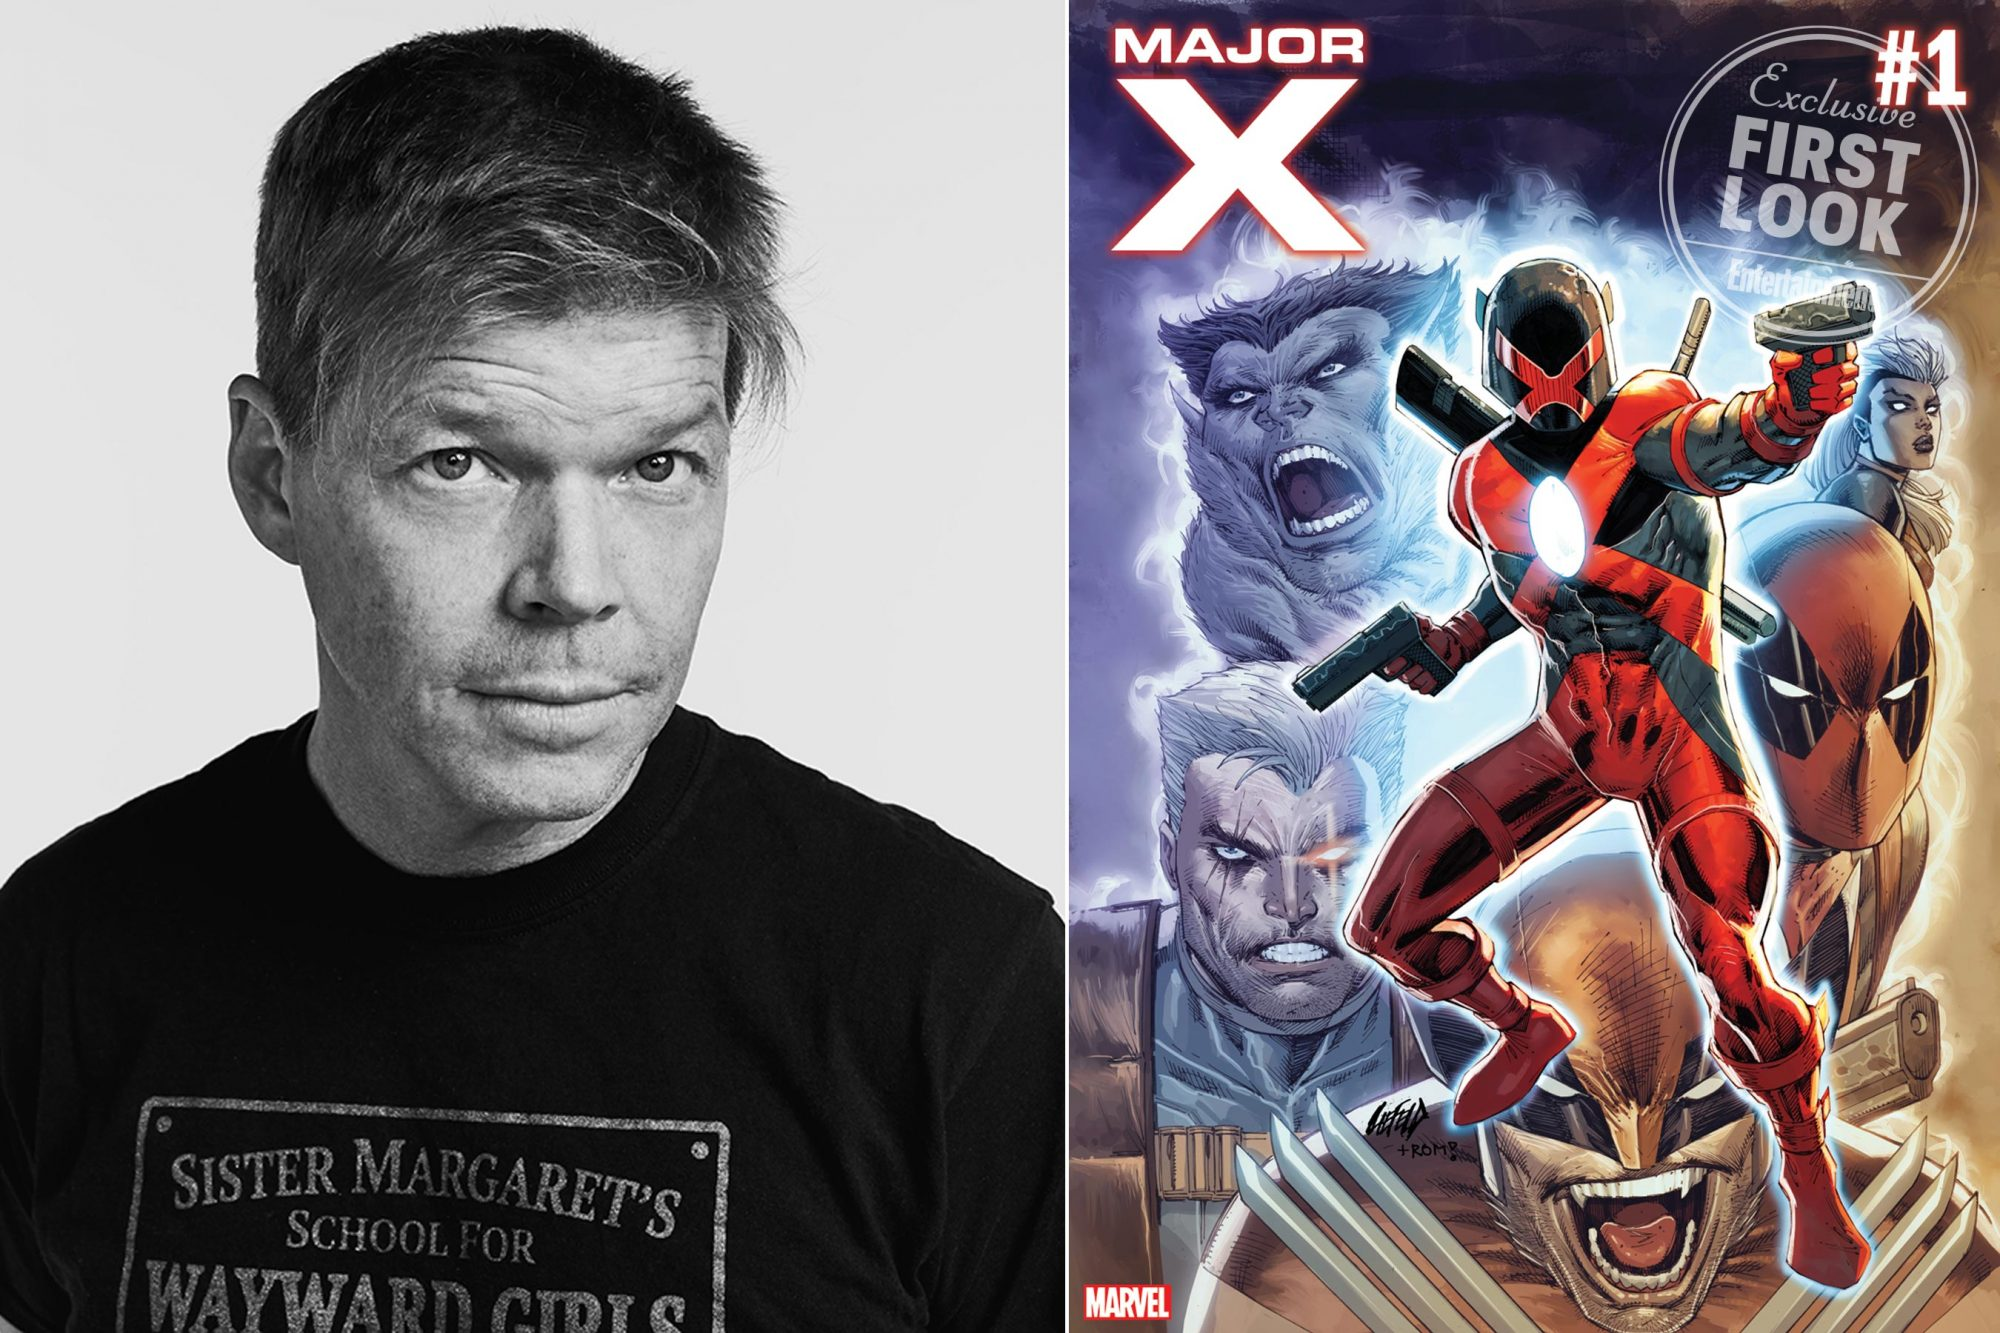 Exclusive: Rob Liefeld to write and draw new Marvel series 'Major X'